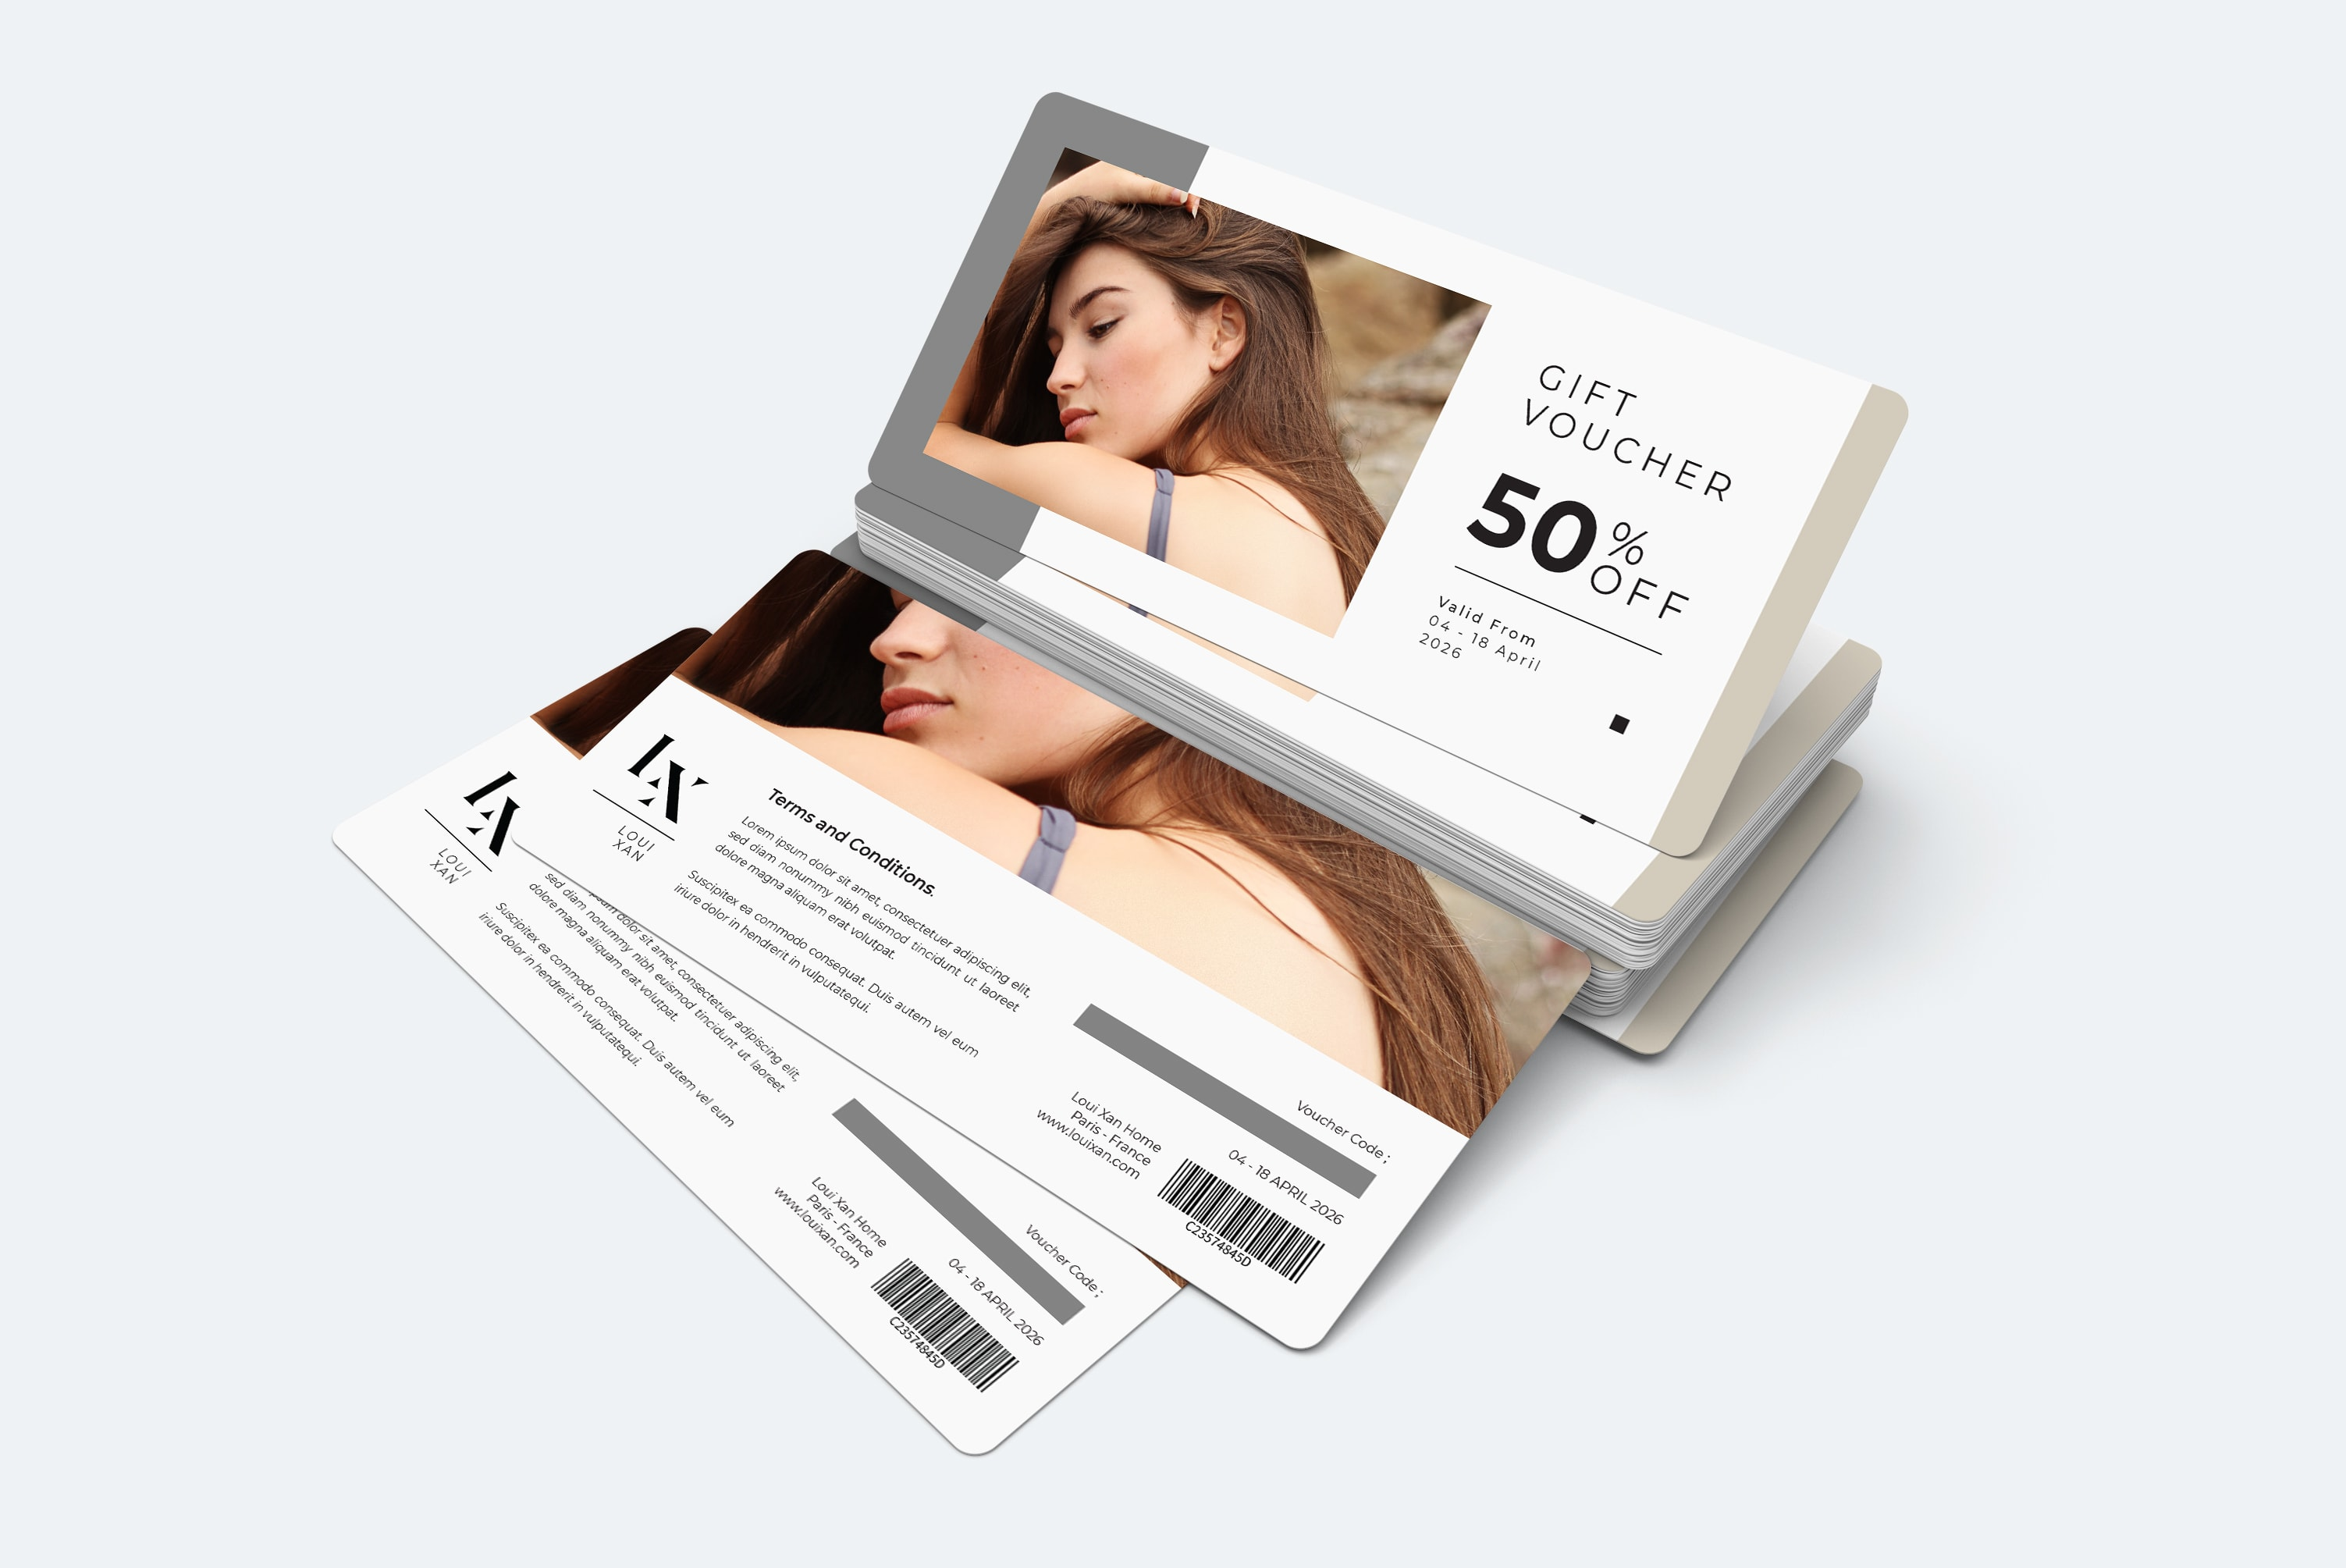 Gift Card Voucher - Body Care Soap